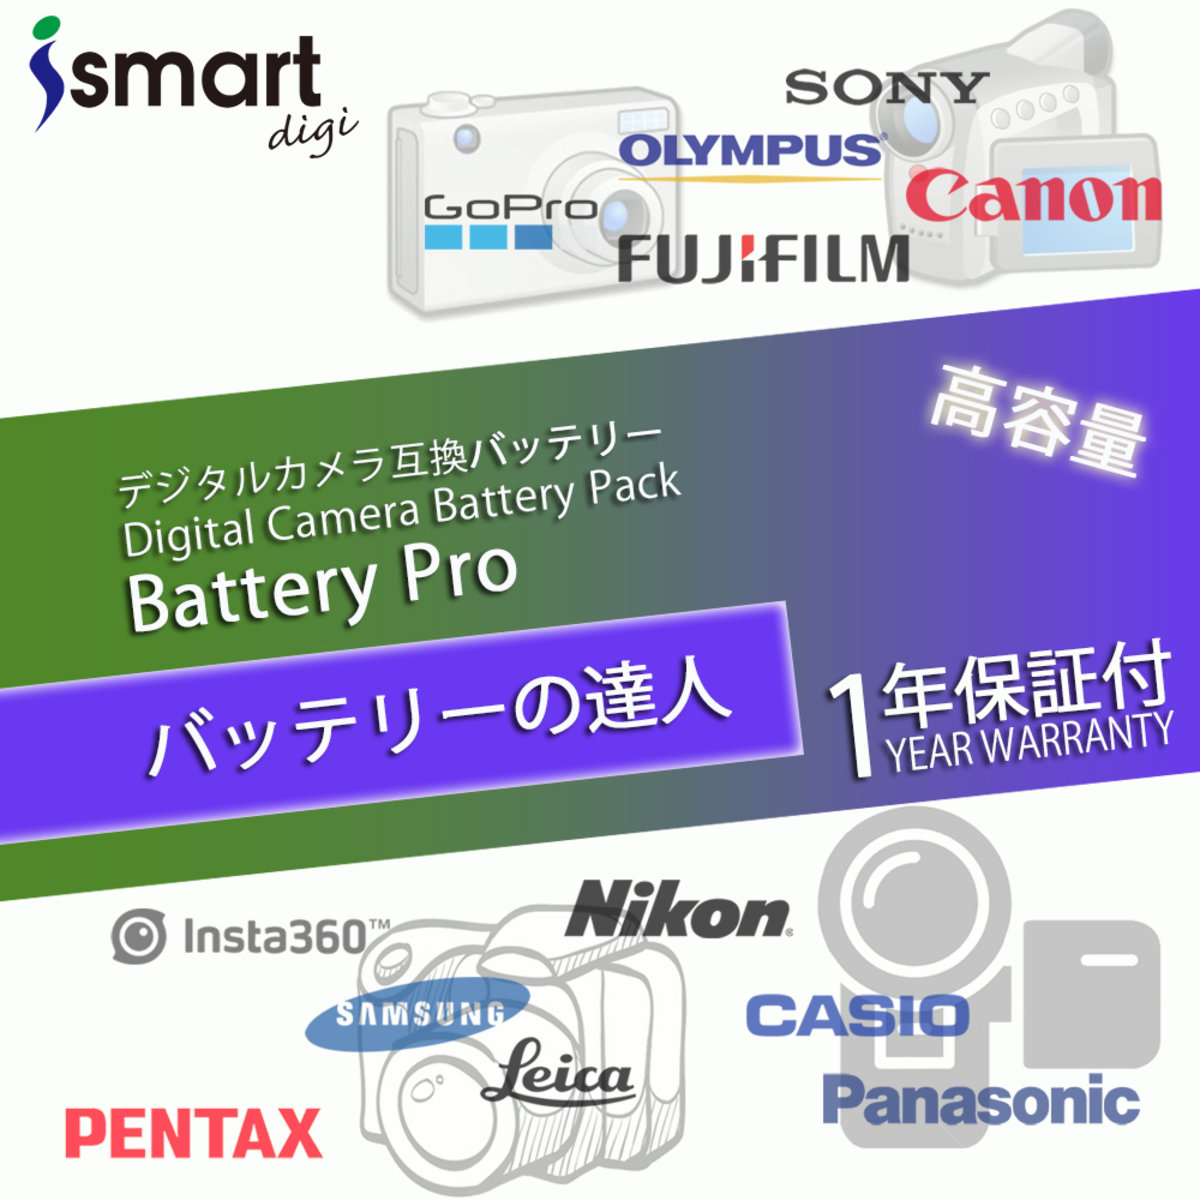 Canon Digital Camera Battery (For: SX40HS, PowerShot G1 X ,SX50 HS, G15 ,G16,SX60 HS ,G3X)